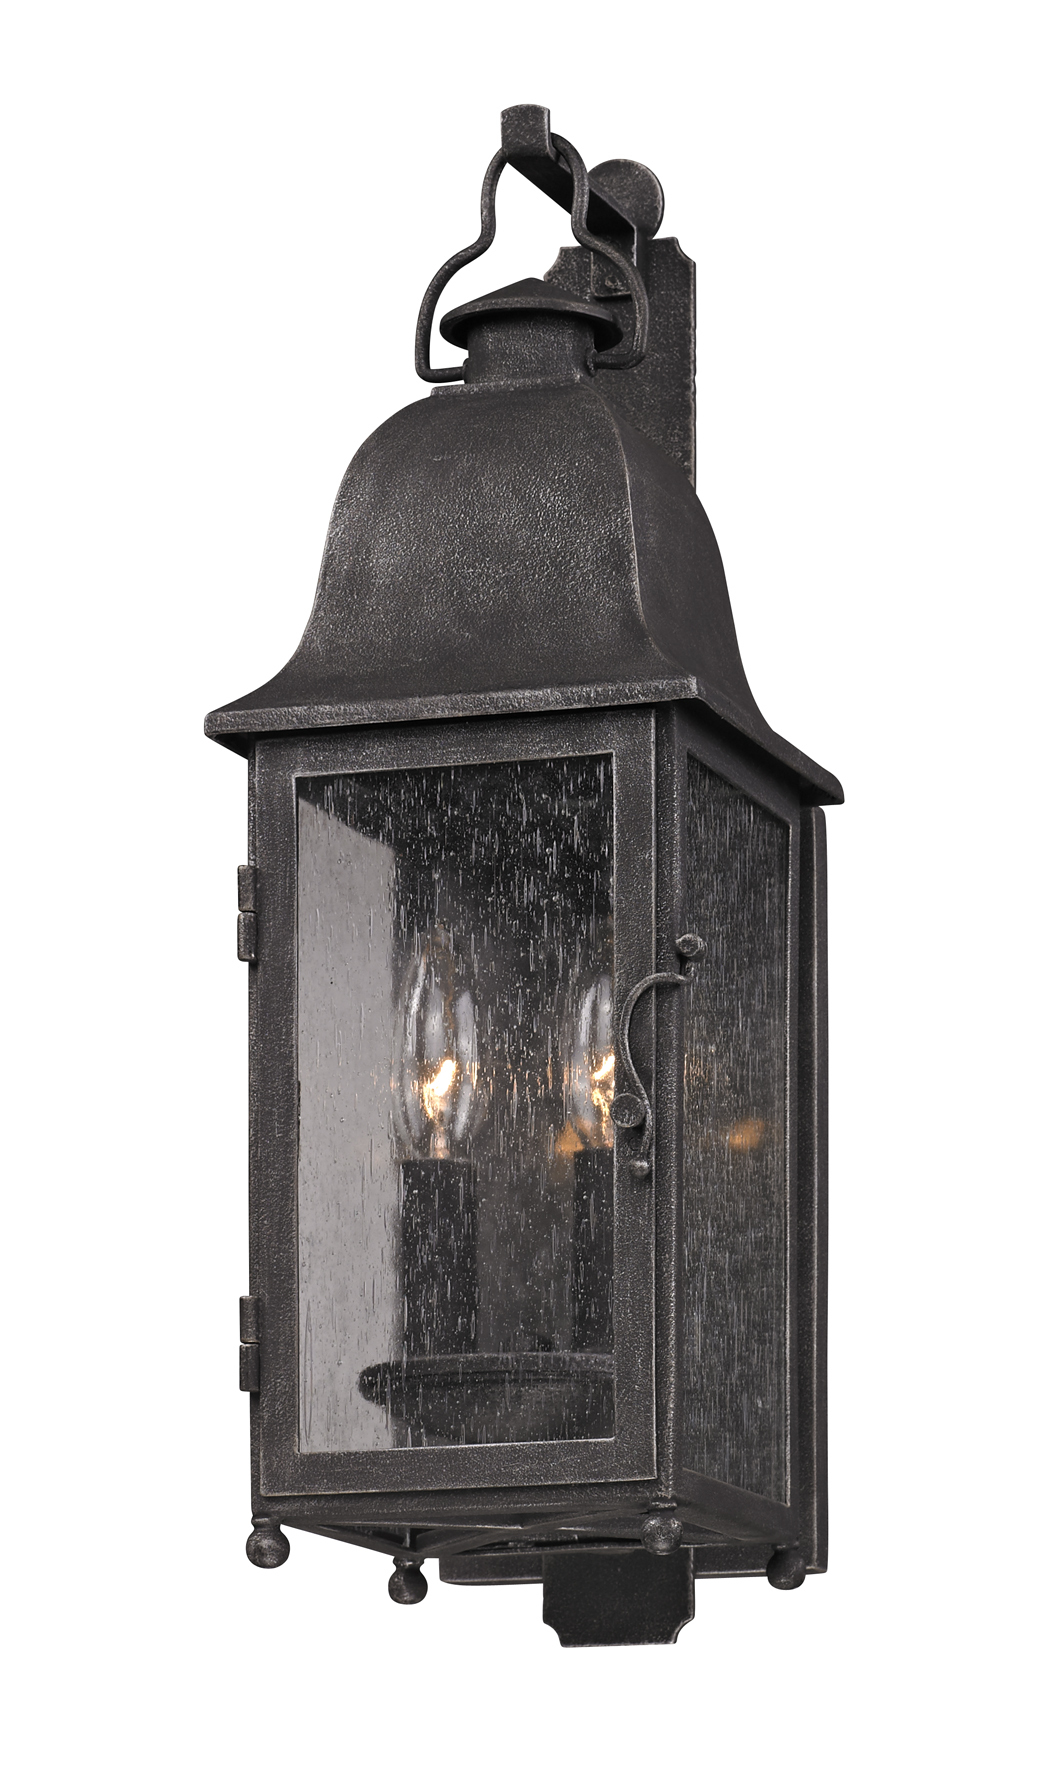 Troy Lighting B3211 Extra Savings And Super Fast Delivery